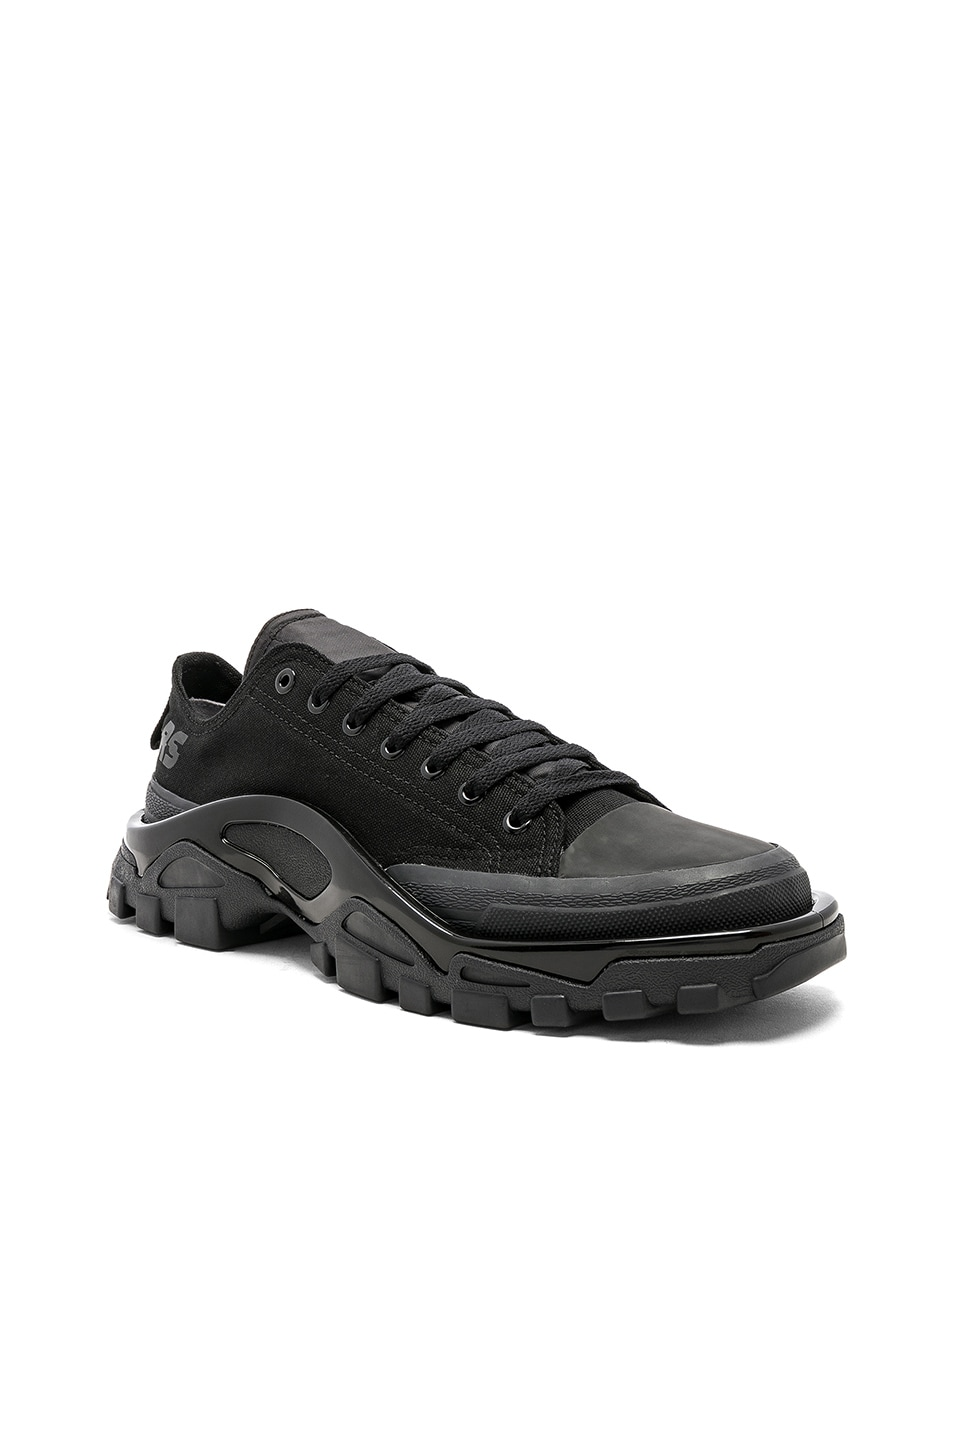 23ed4496409 Image 1 of adidas by Raf Simons Detroit Runner in Core Black   Core Black